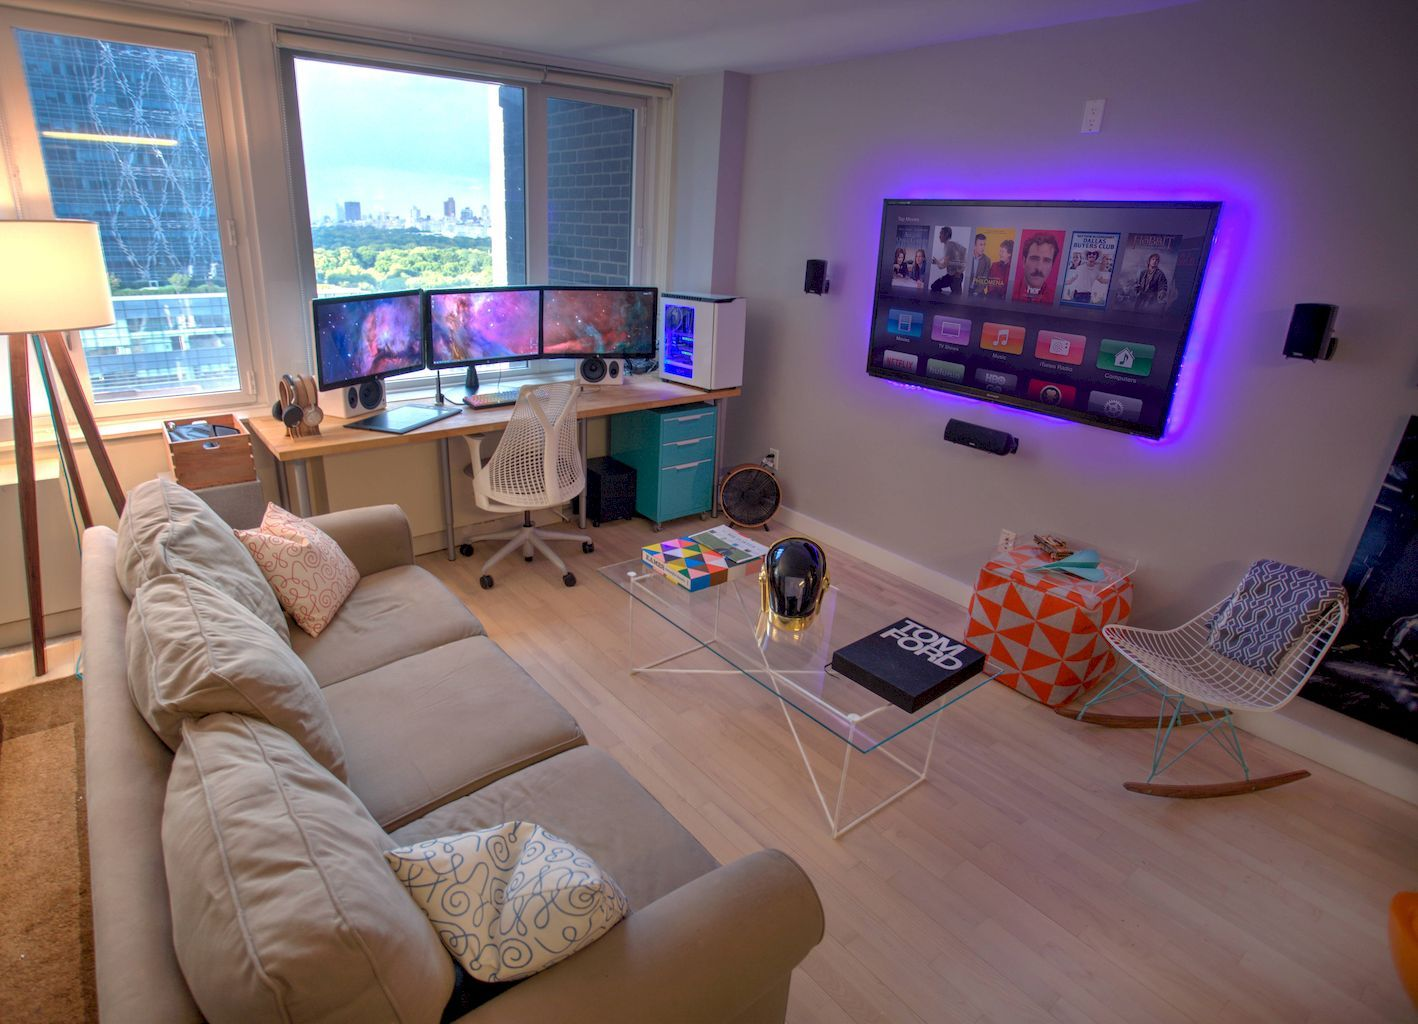 Gorgeous 80 Smart Solution Small Apartment Living Room Decor Ideas Https Roomadness Com 2018 01 14 80 Smart Solut Game Room Design Game Room Decor Room Setup